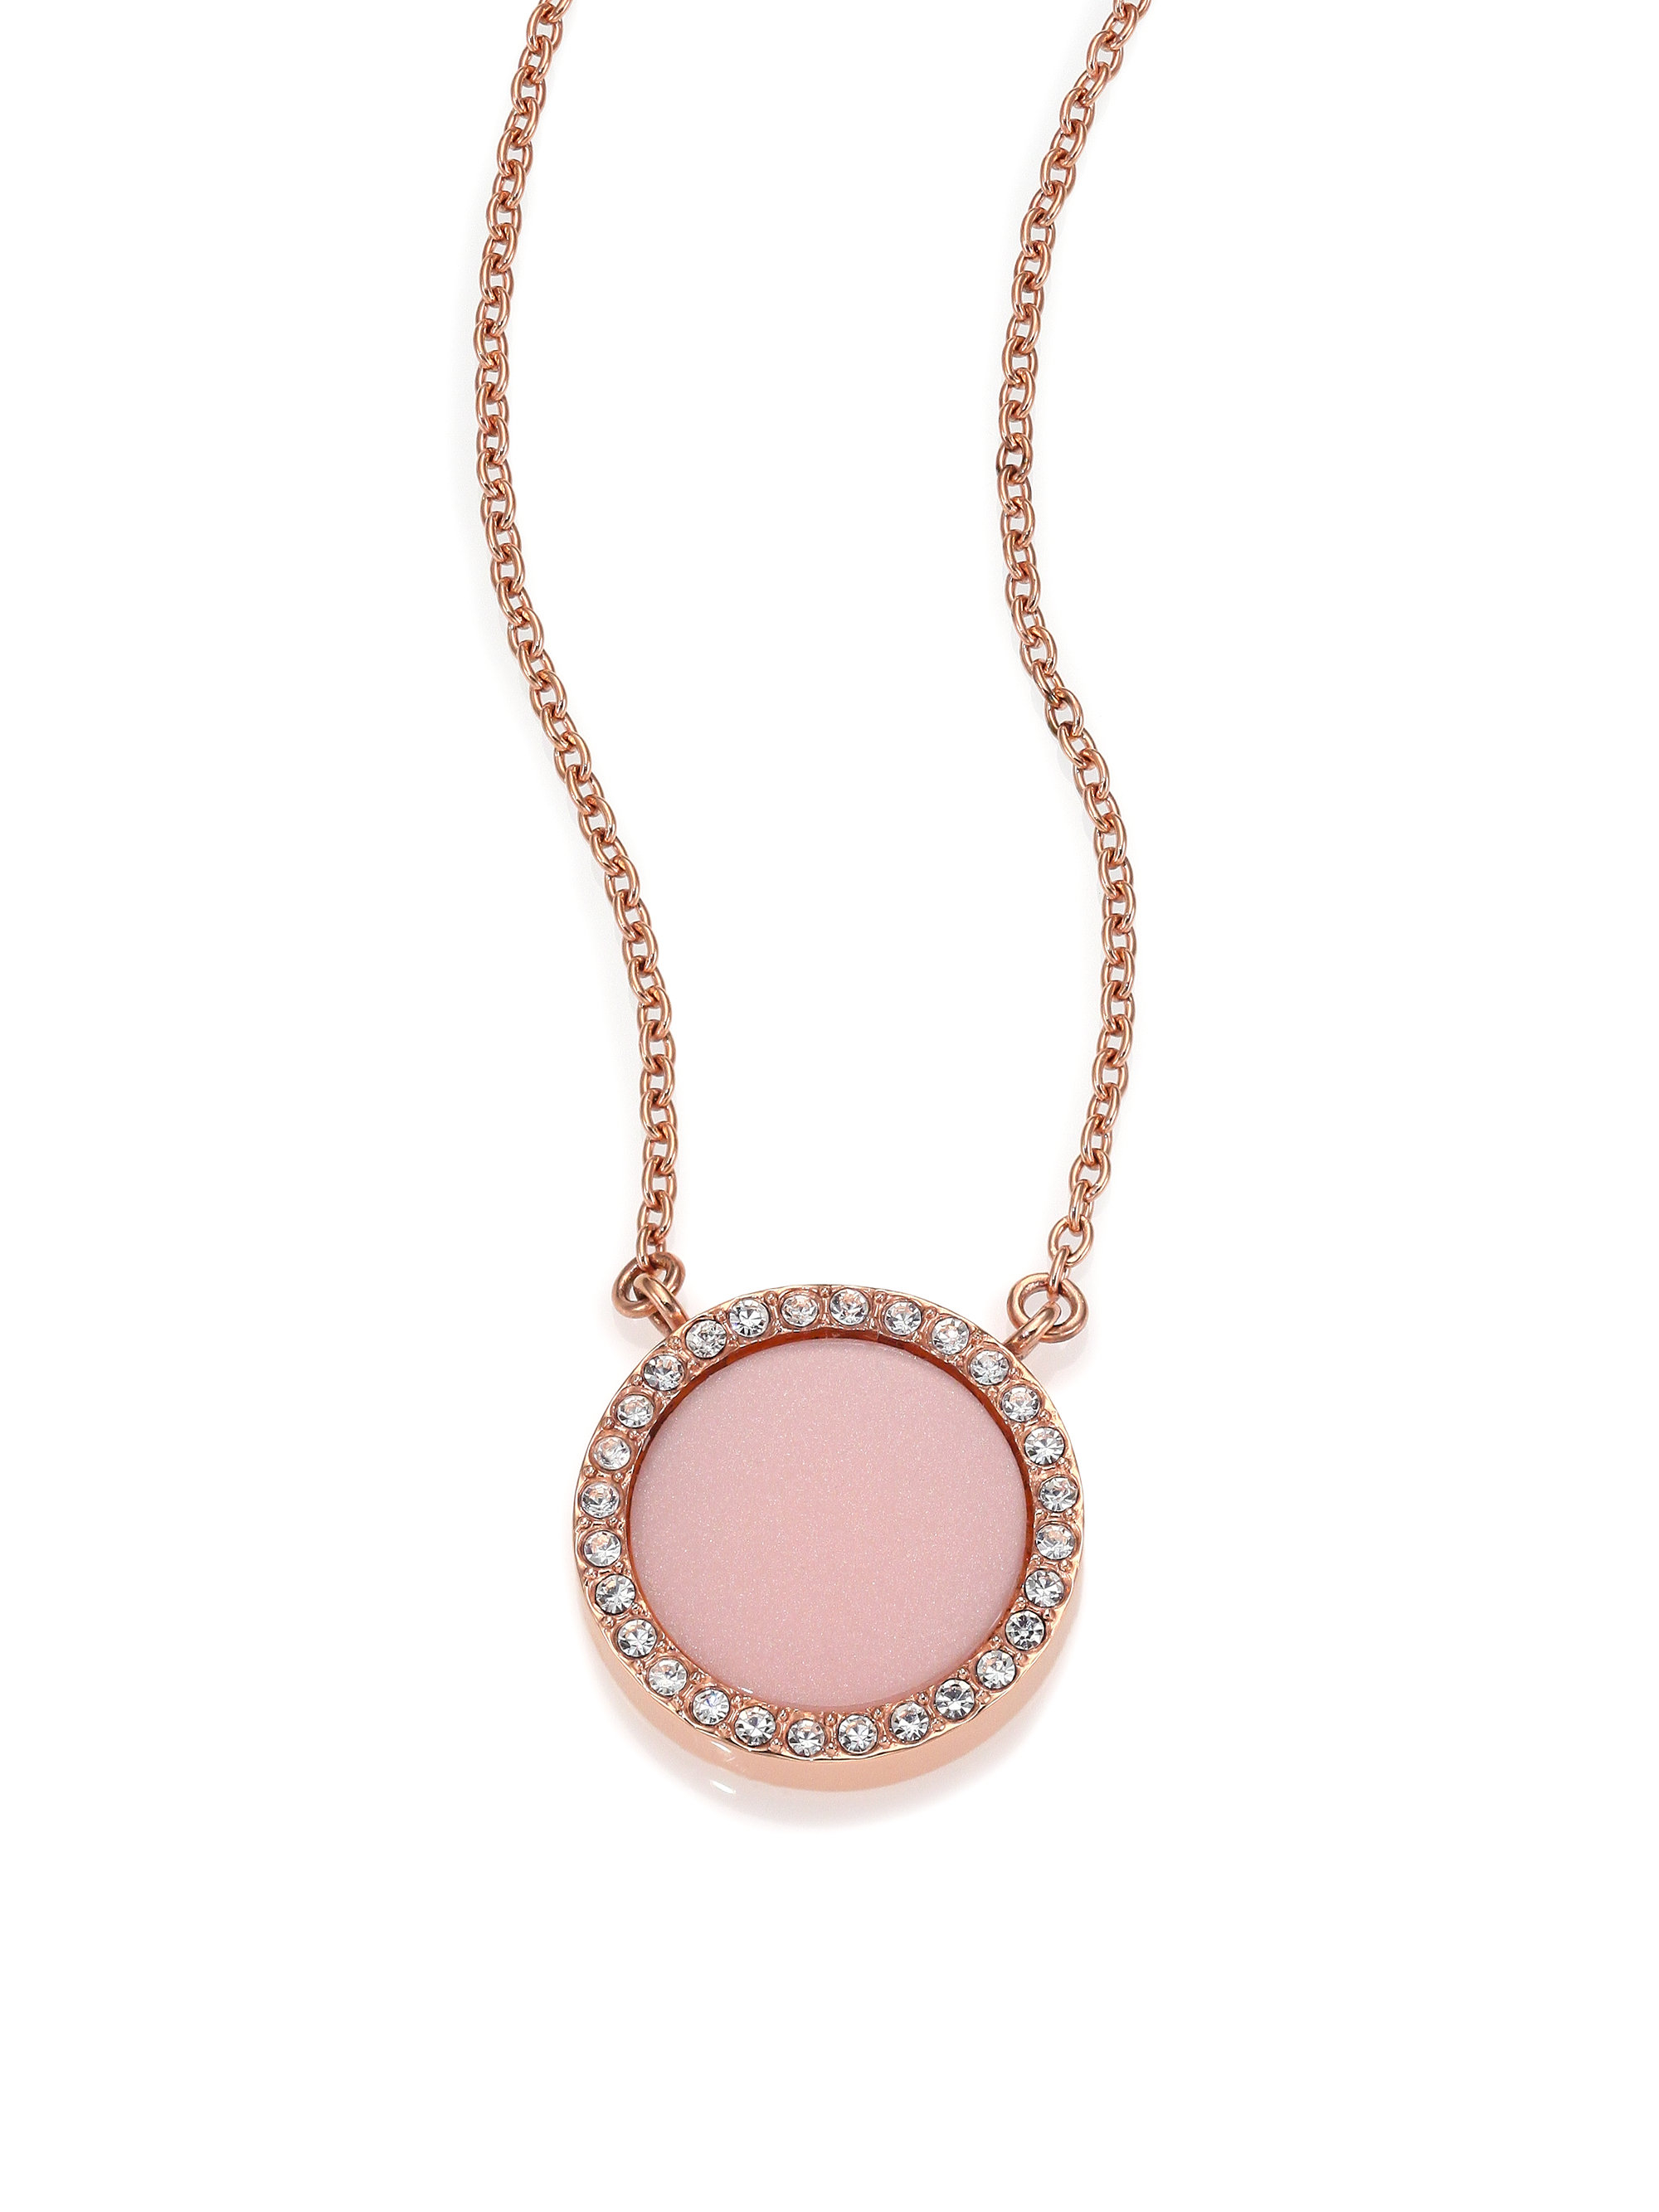 c6a7f8ee1bbda Michael Kors Rose Gold Circle Necklace - Necklace Wallpaper ...